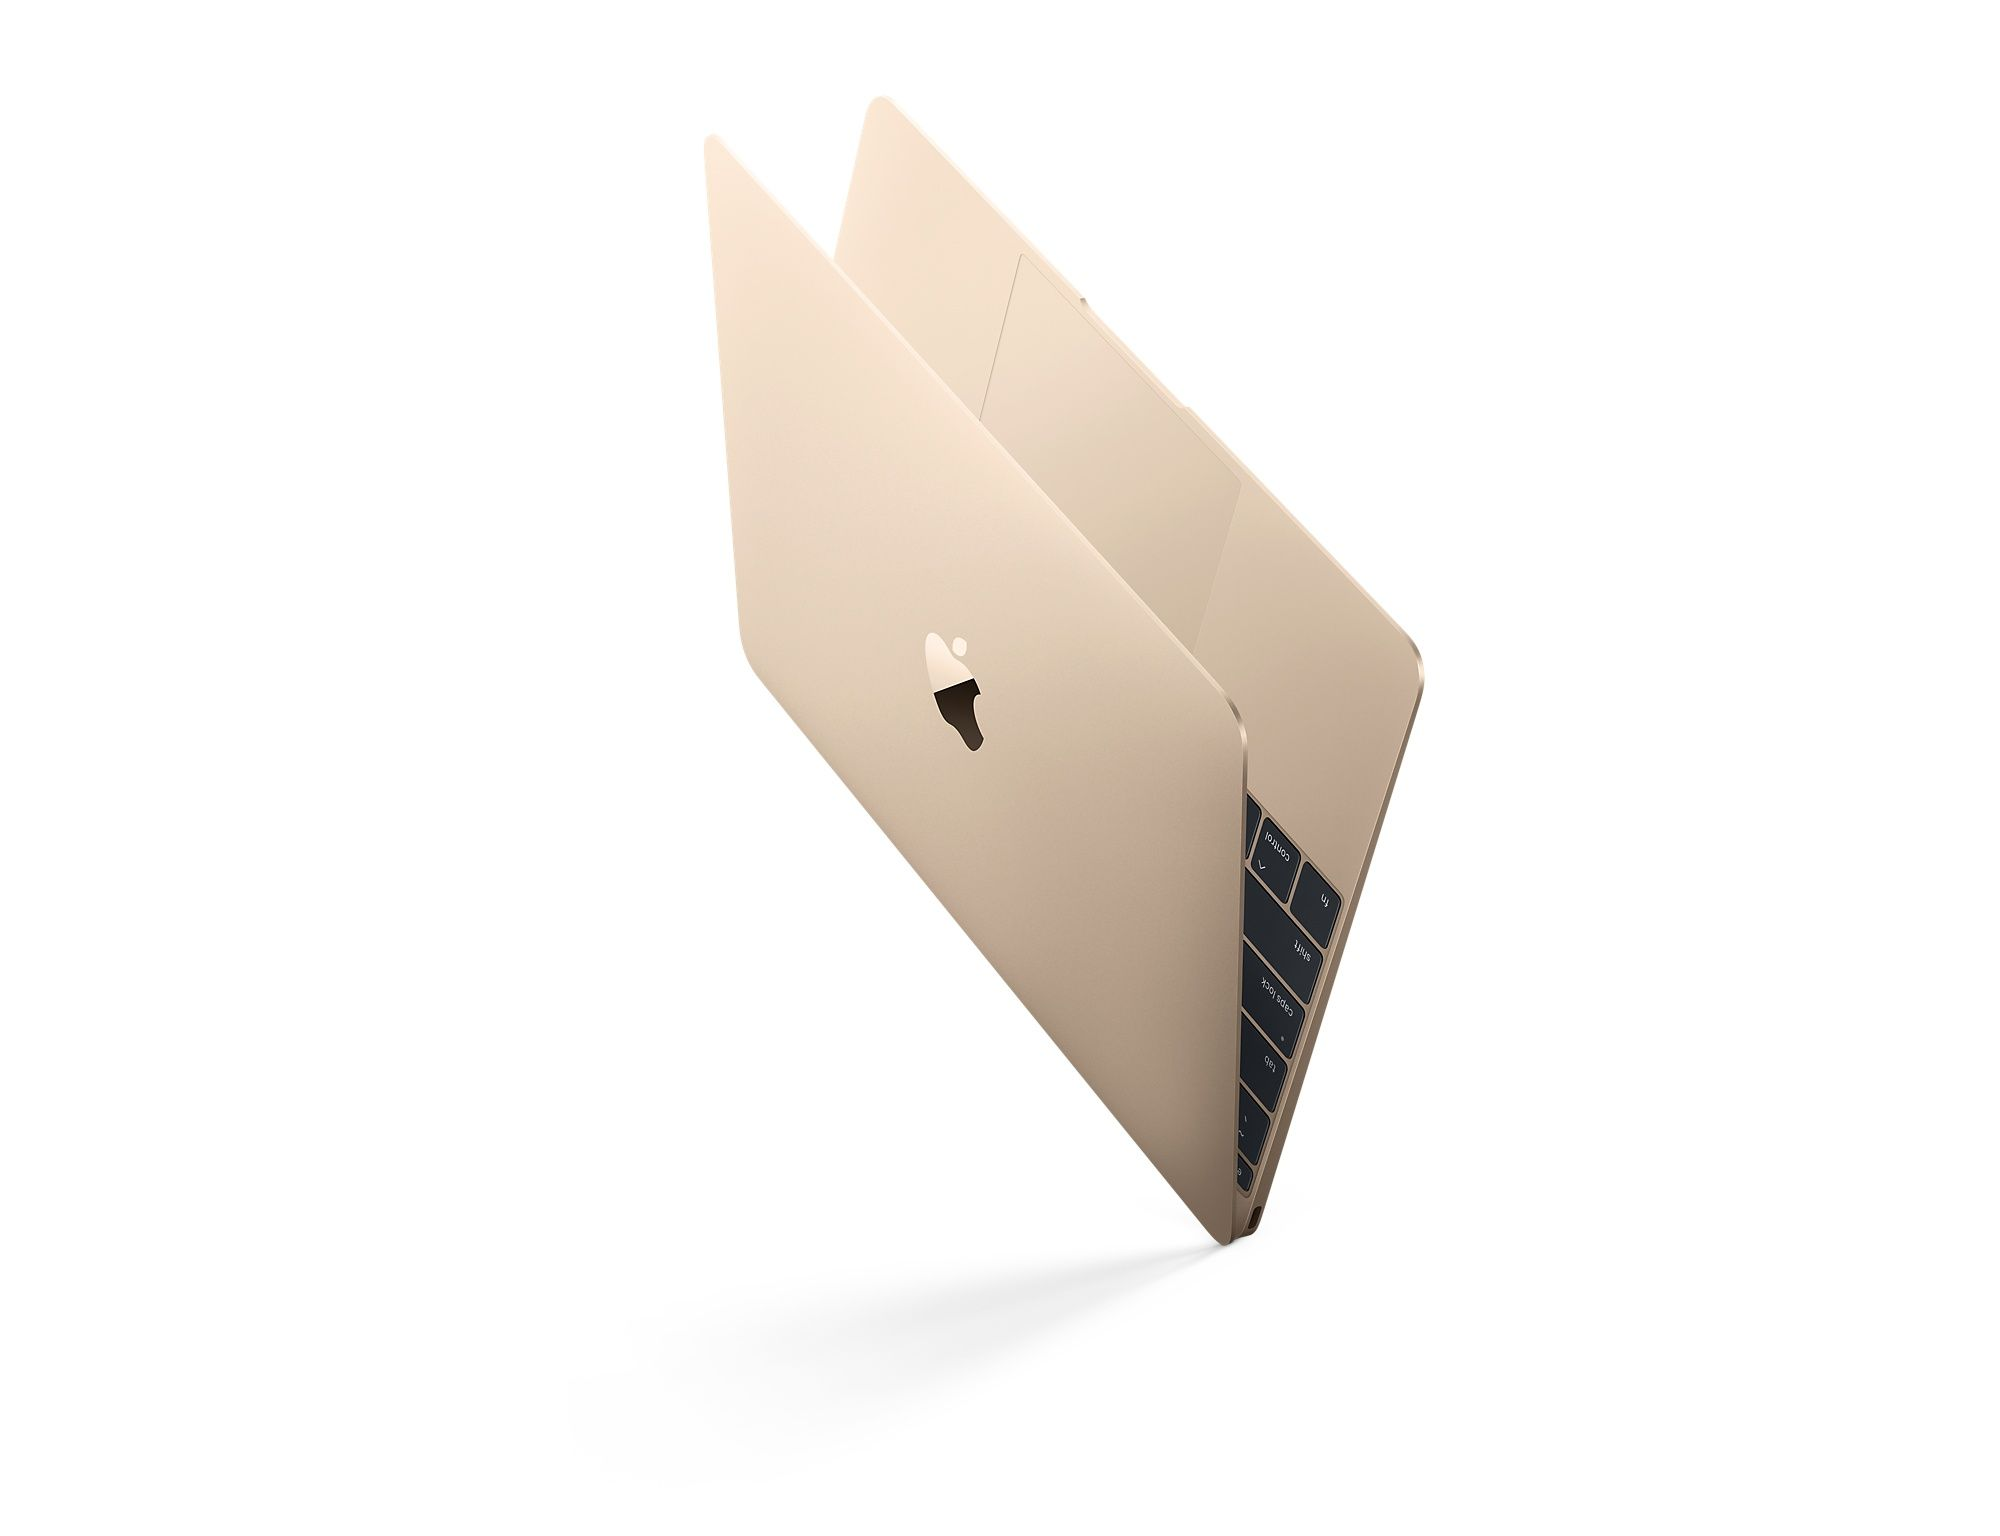 la macbook más